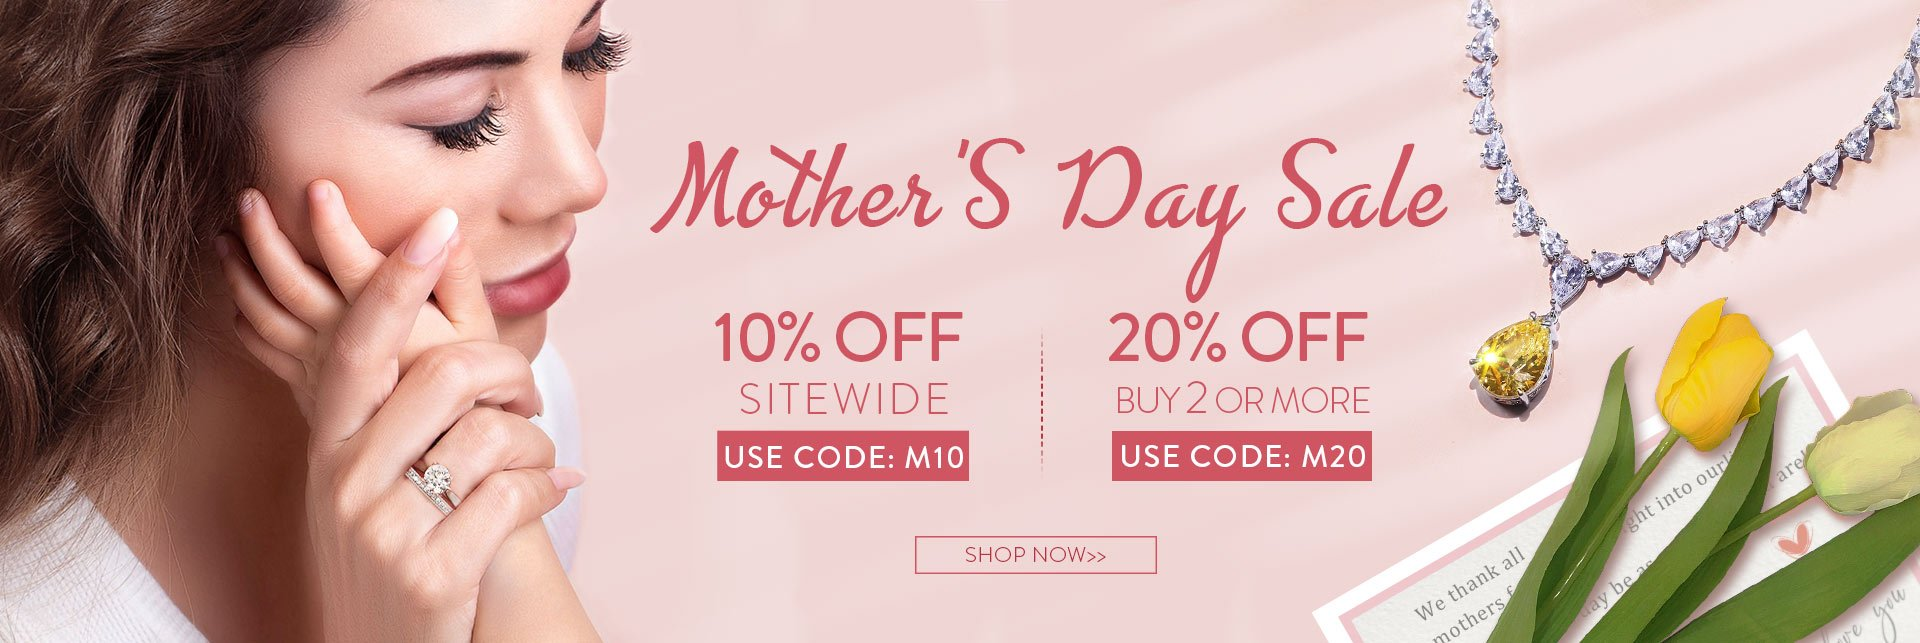 jeulia mother's day sale